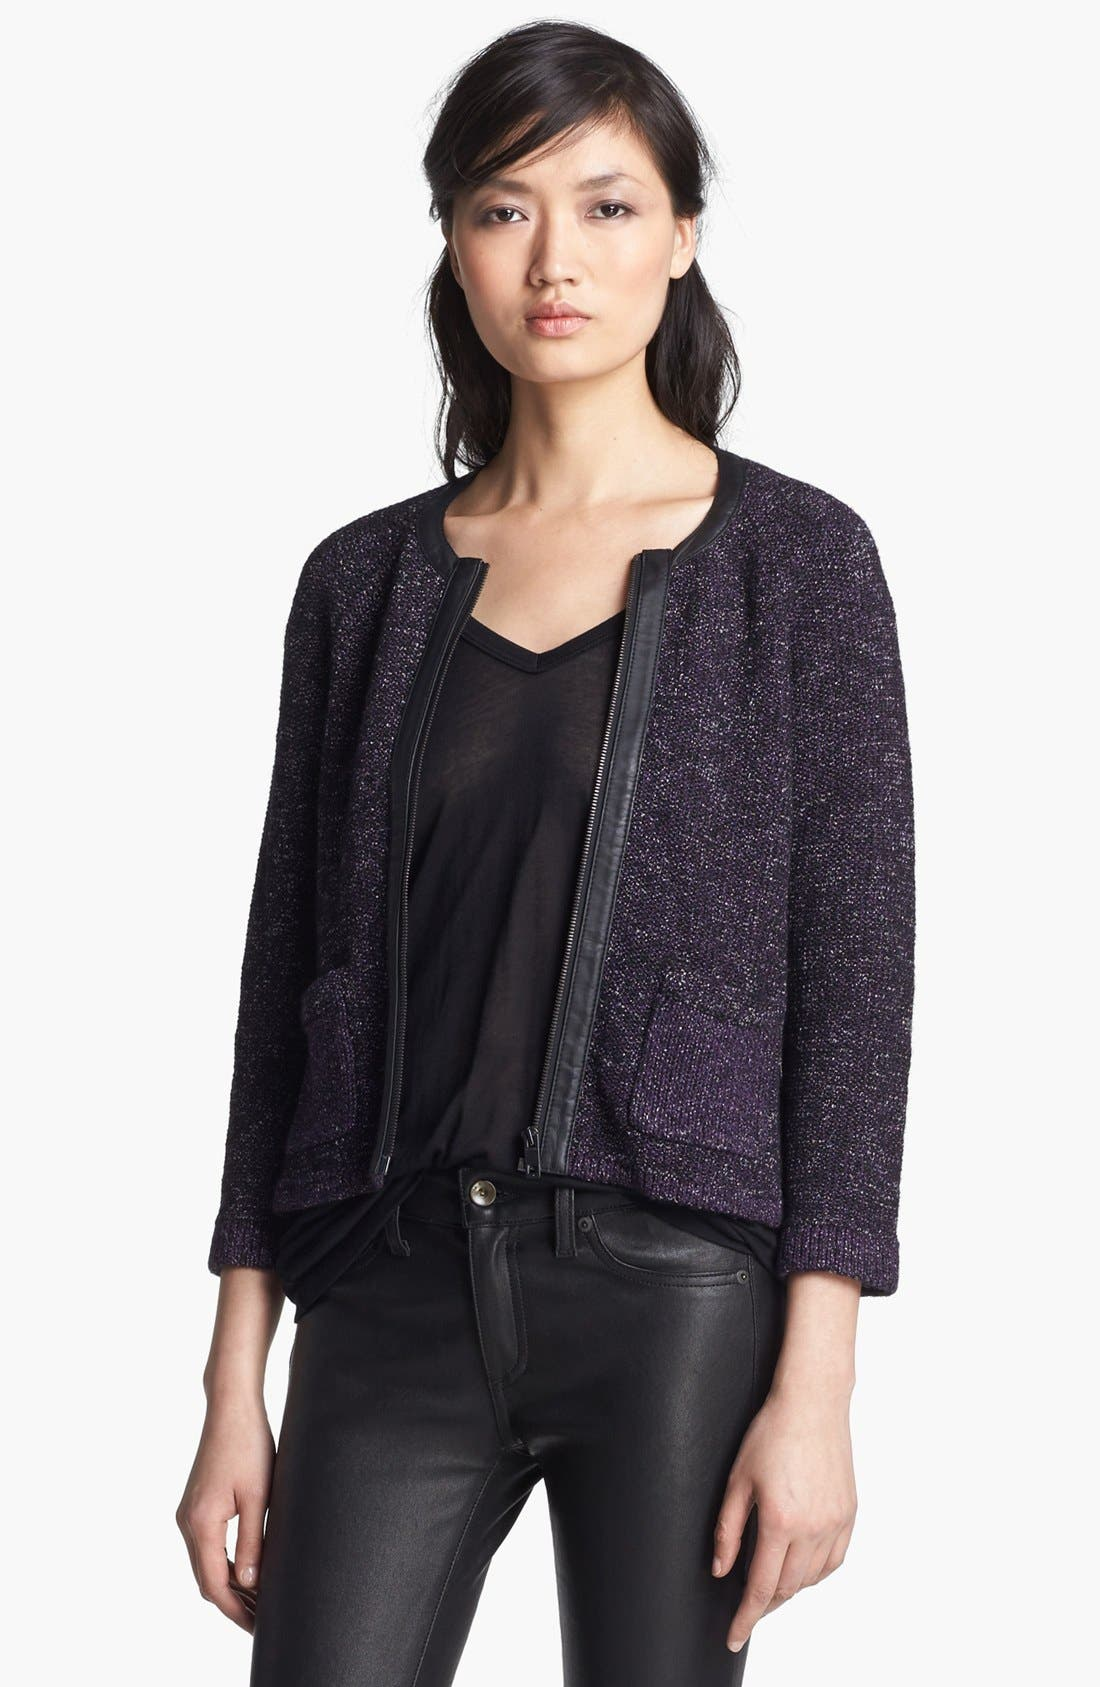 Alternate Image 1 Selected - rag & bone 'Jackie' Colorless Knit Jacket